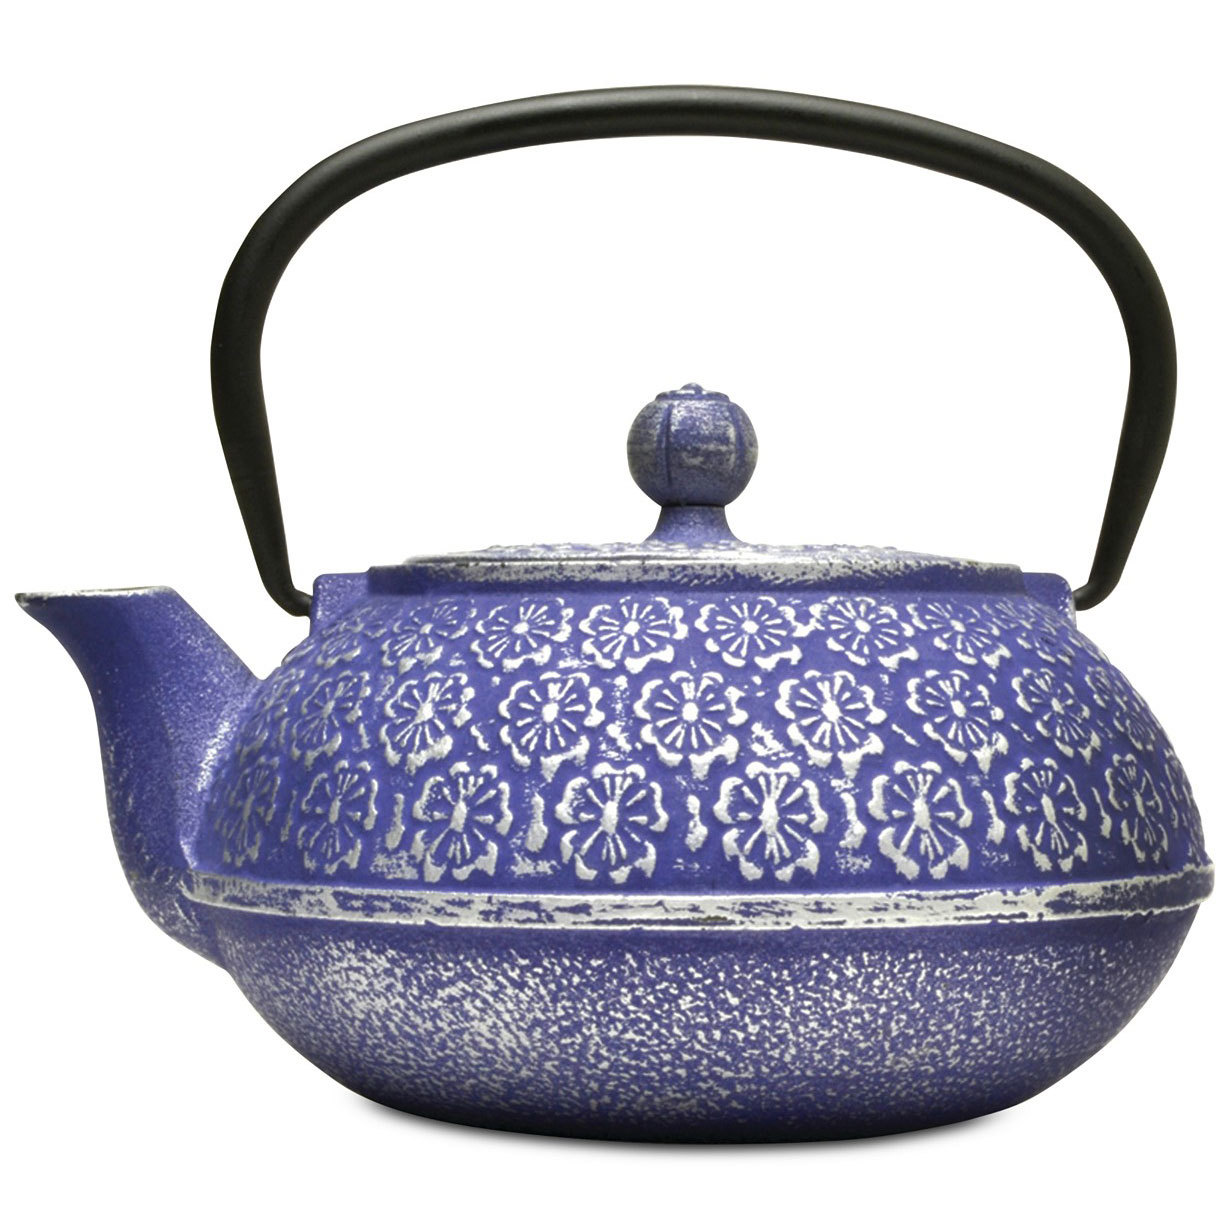 Primula Floral Cast Iron Teapot & Infuser from Macys photo